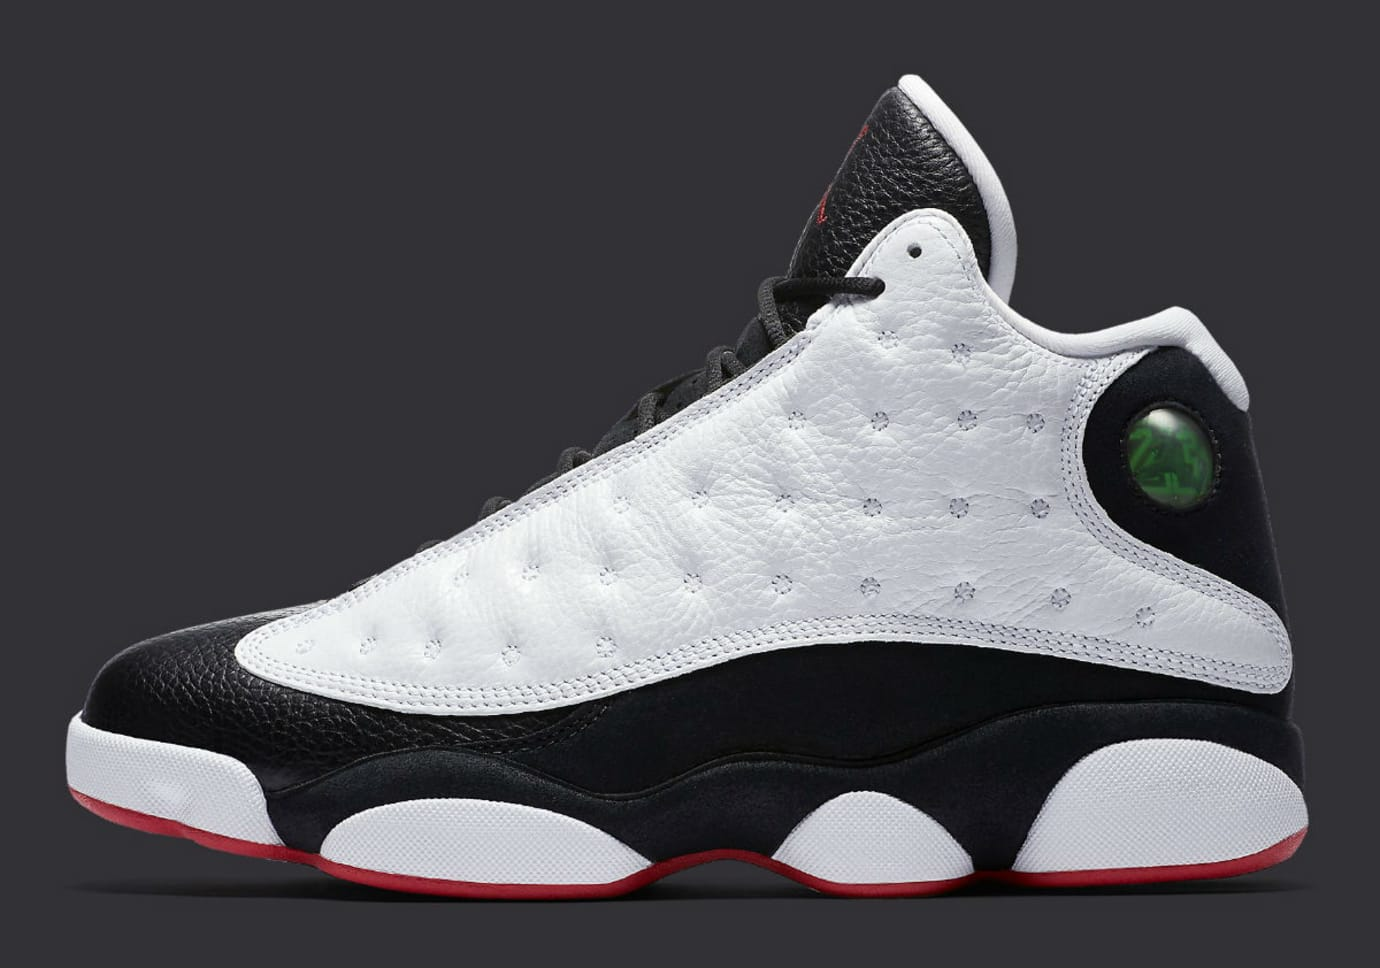 finest selection 131b6 24682 Air Jordan 13 XIII He Got Game 2018 Release Date 414571-104 ...